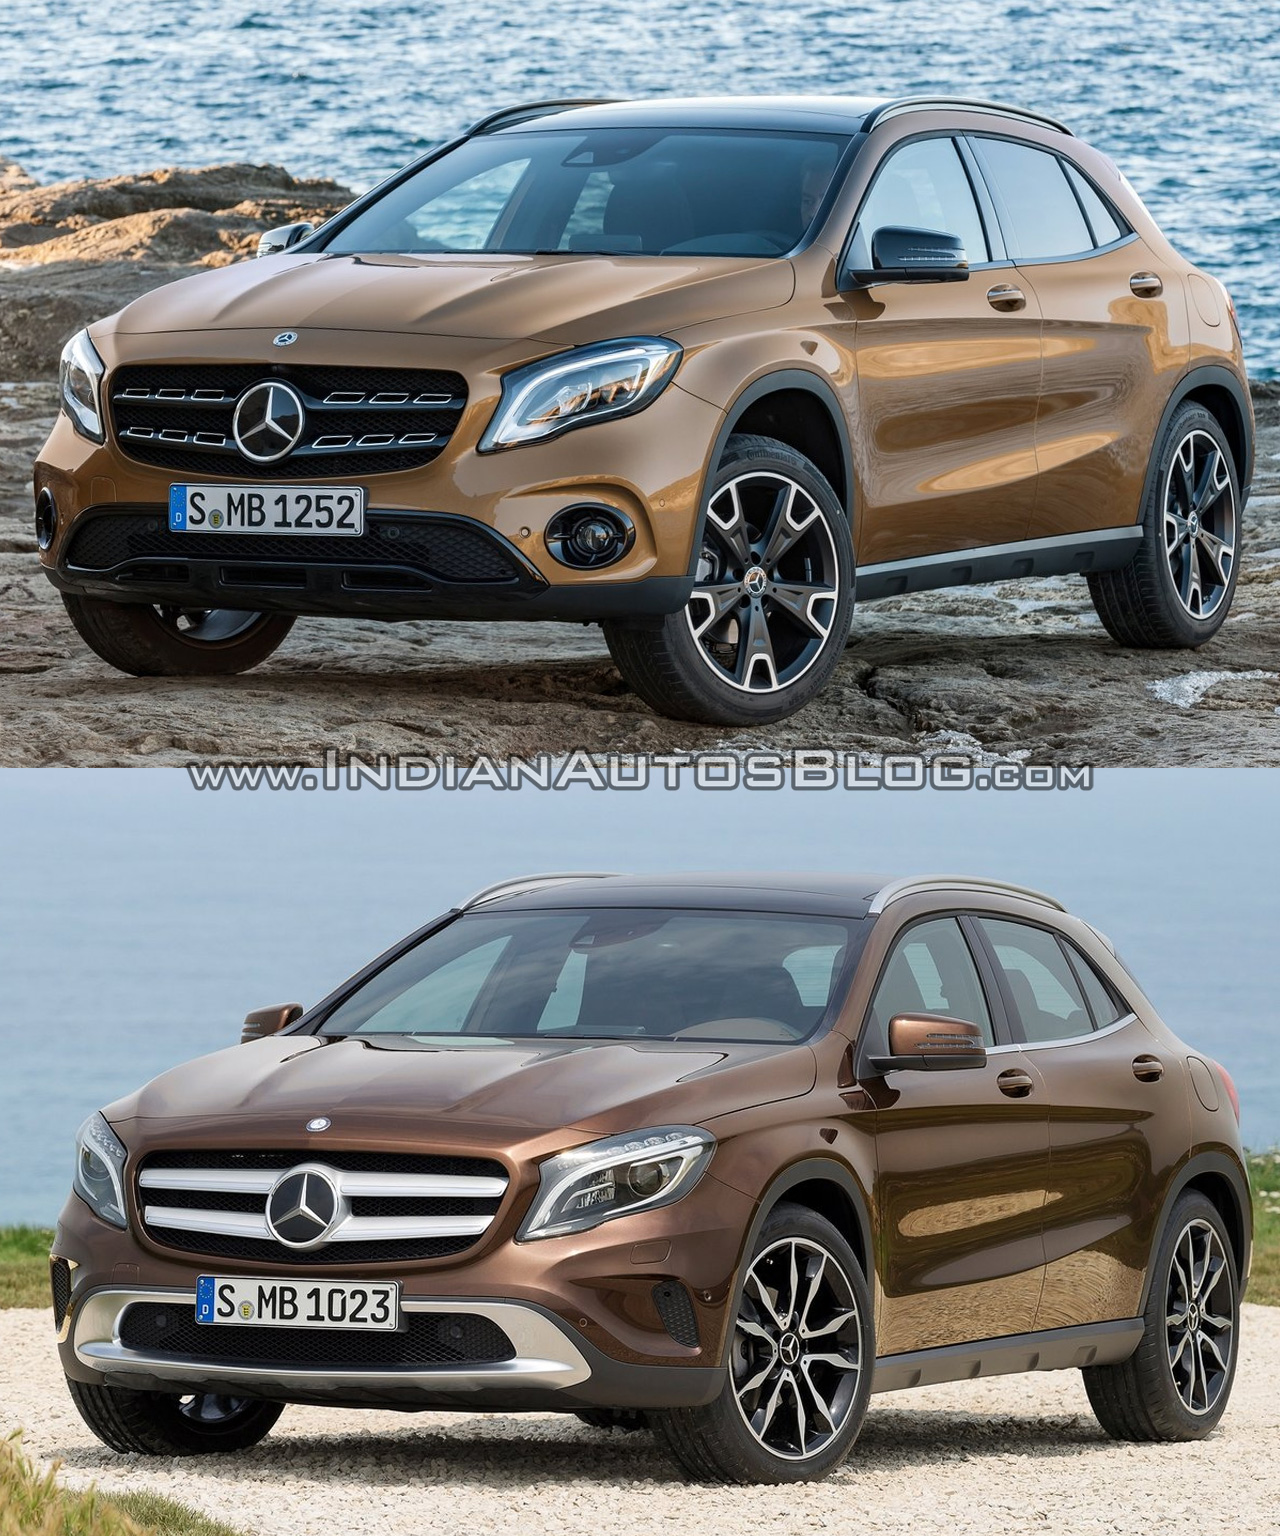 2017 mercedes gla vs 2014 mercedes gla old vs new. Black Bedroom Furniture Sets. Home Design Ideas